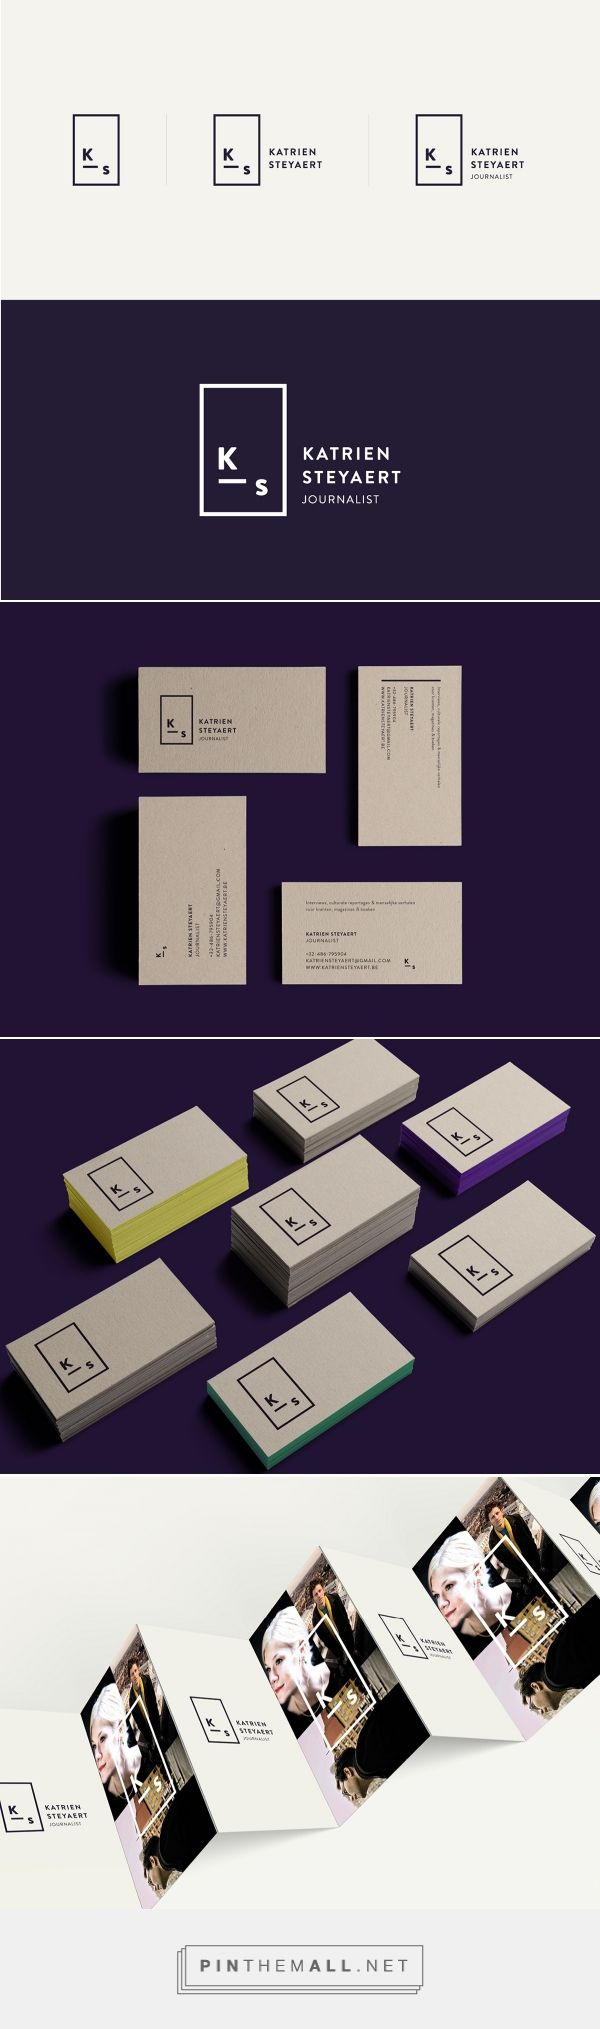 Katrien Steyaert - Journalist on Behance| Fivestar Branding Gallery and Inspiration